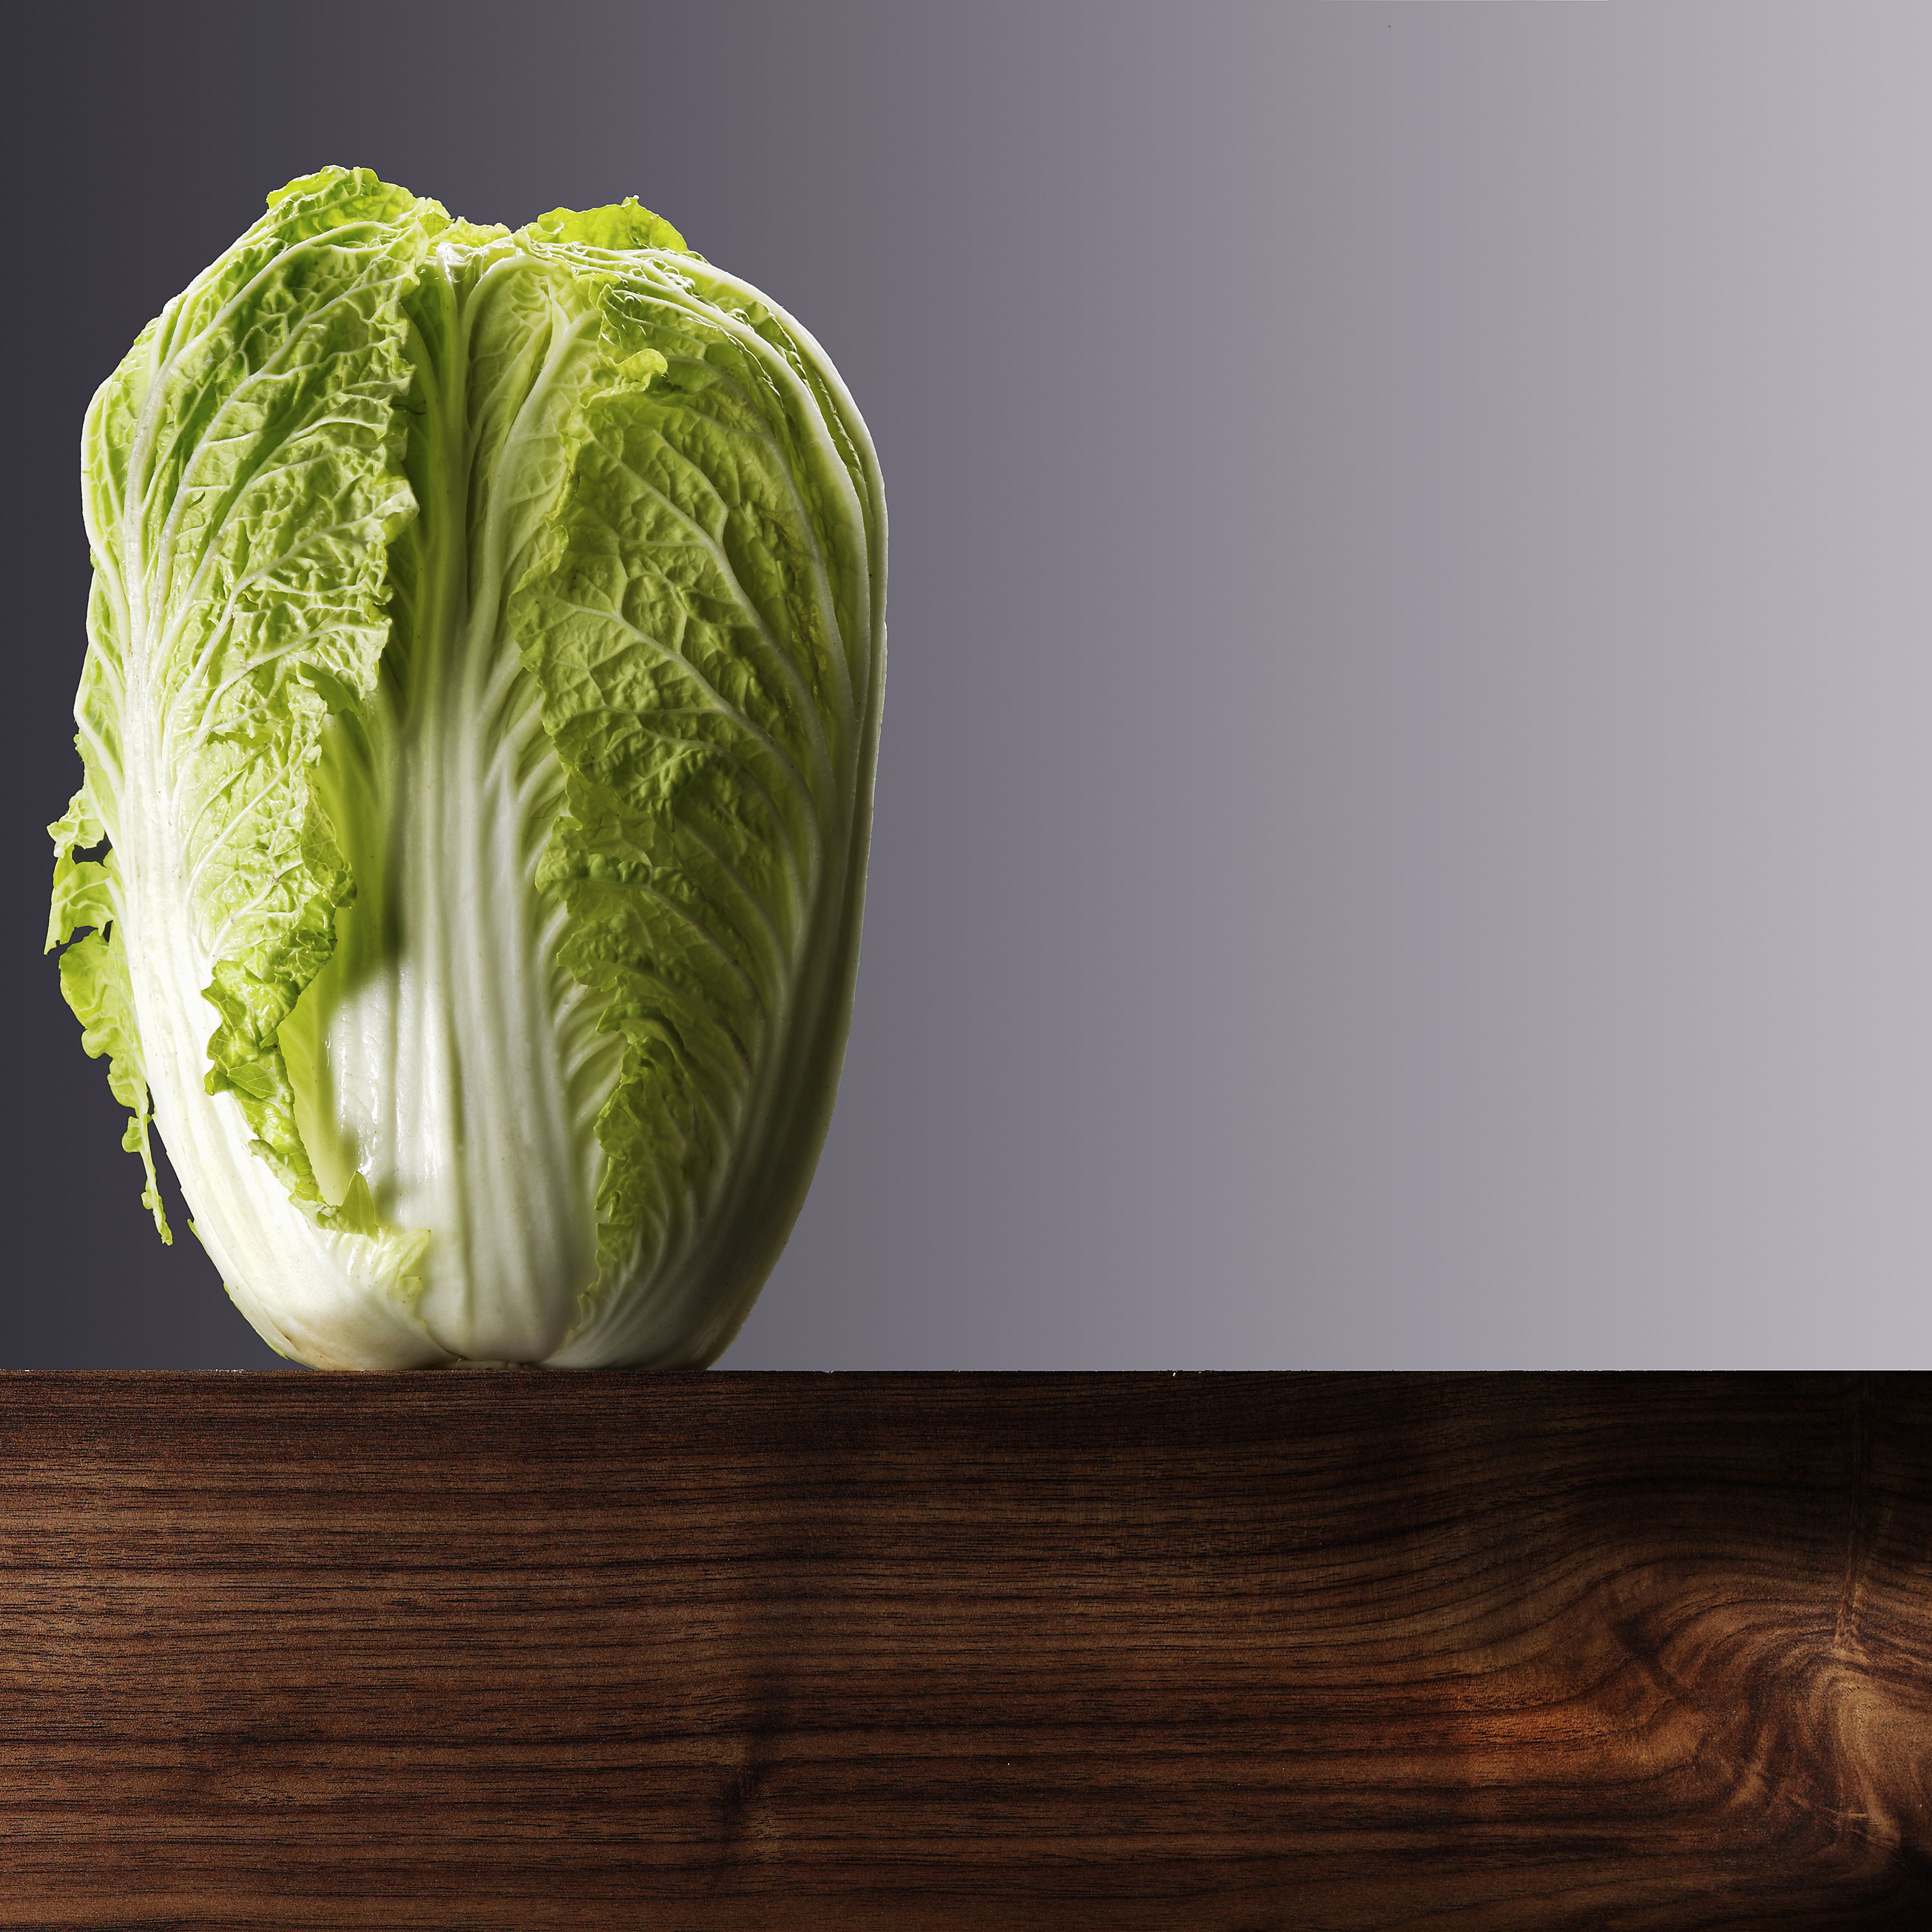 10 Chinese Cabbage Recipes With Bok Choy And Napa Cabbage